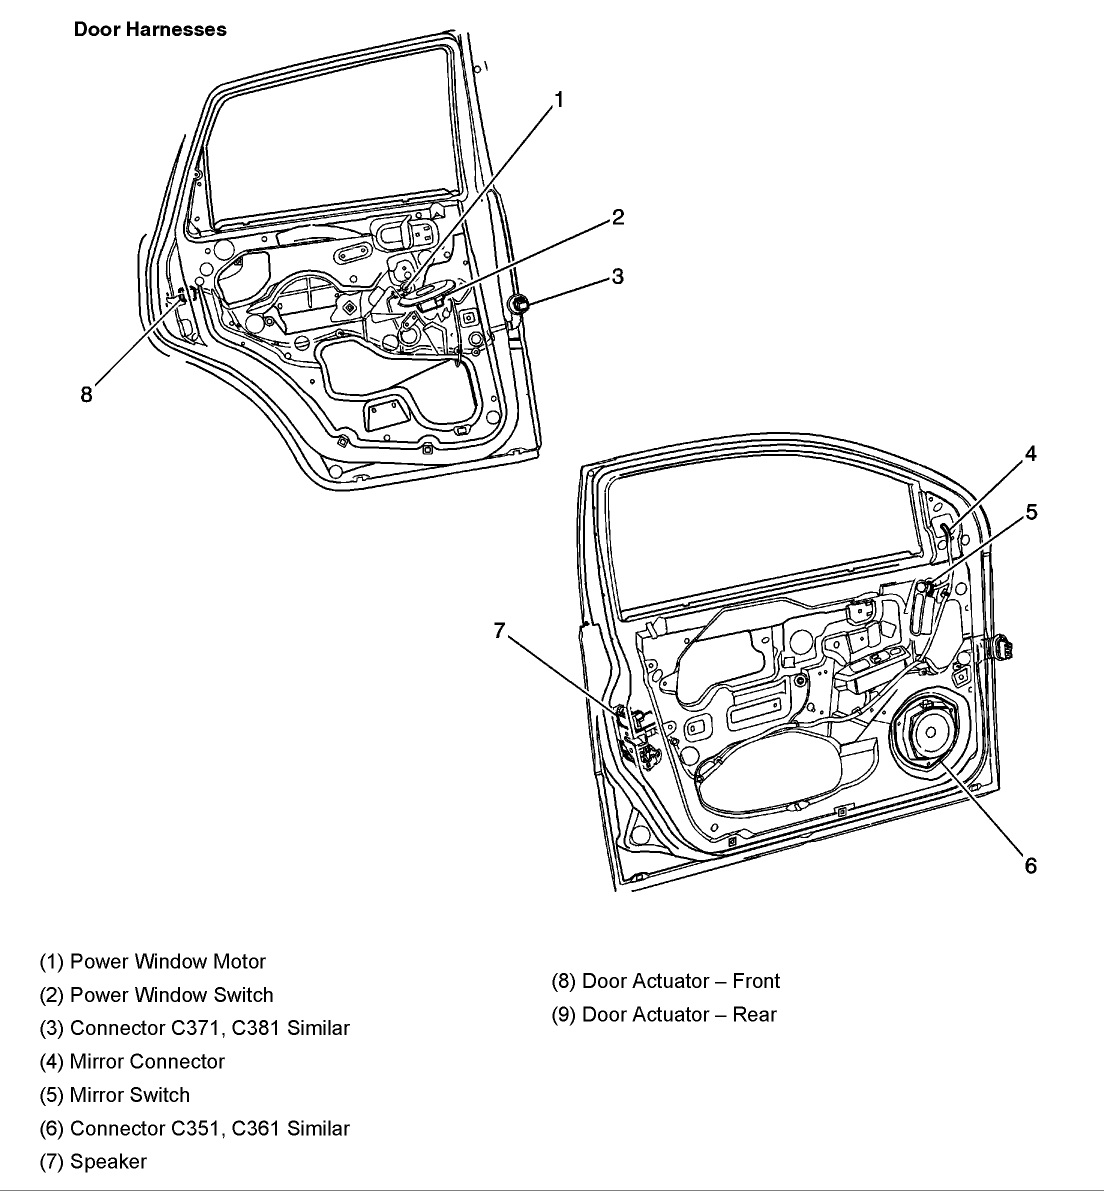 1999 vw jetta sd sensor wiring diagram 2003 vw jetta